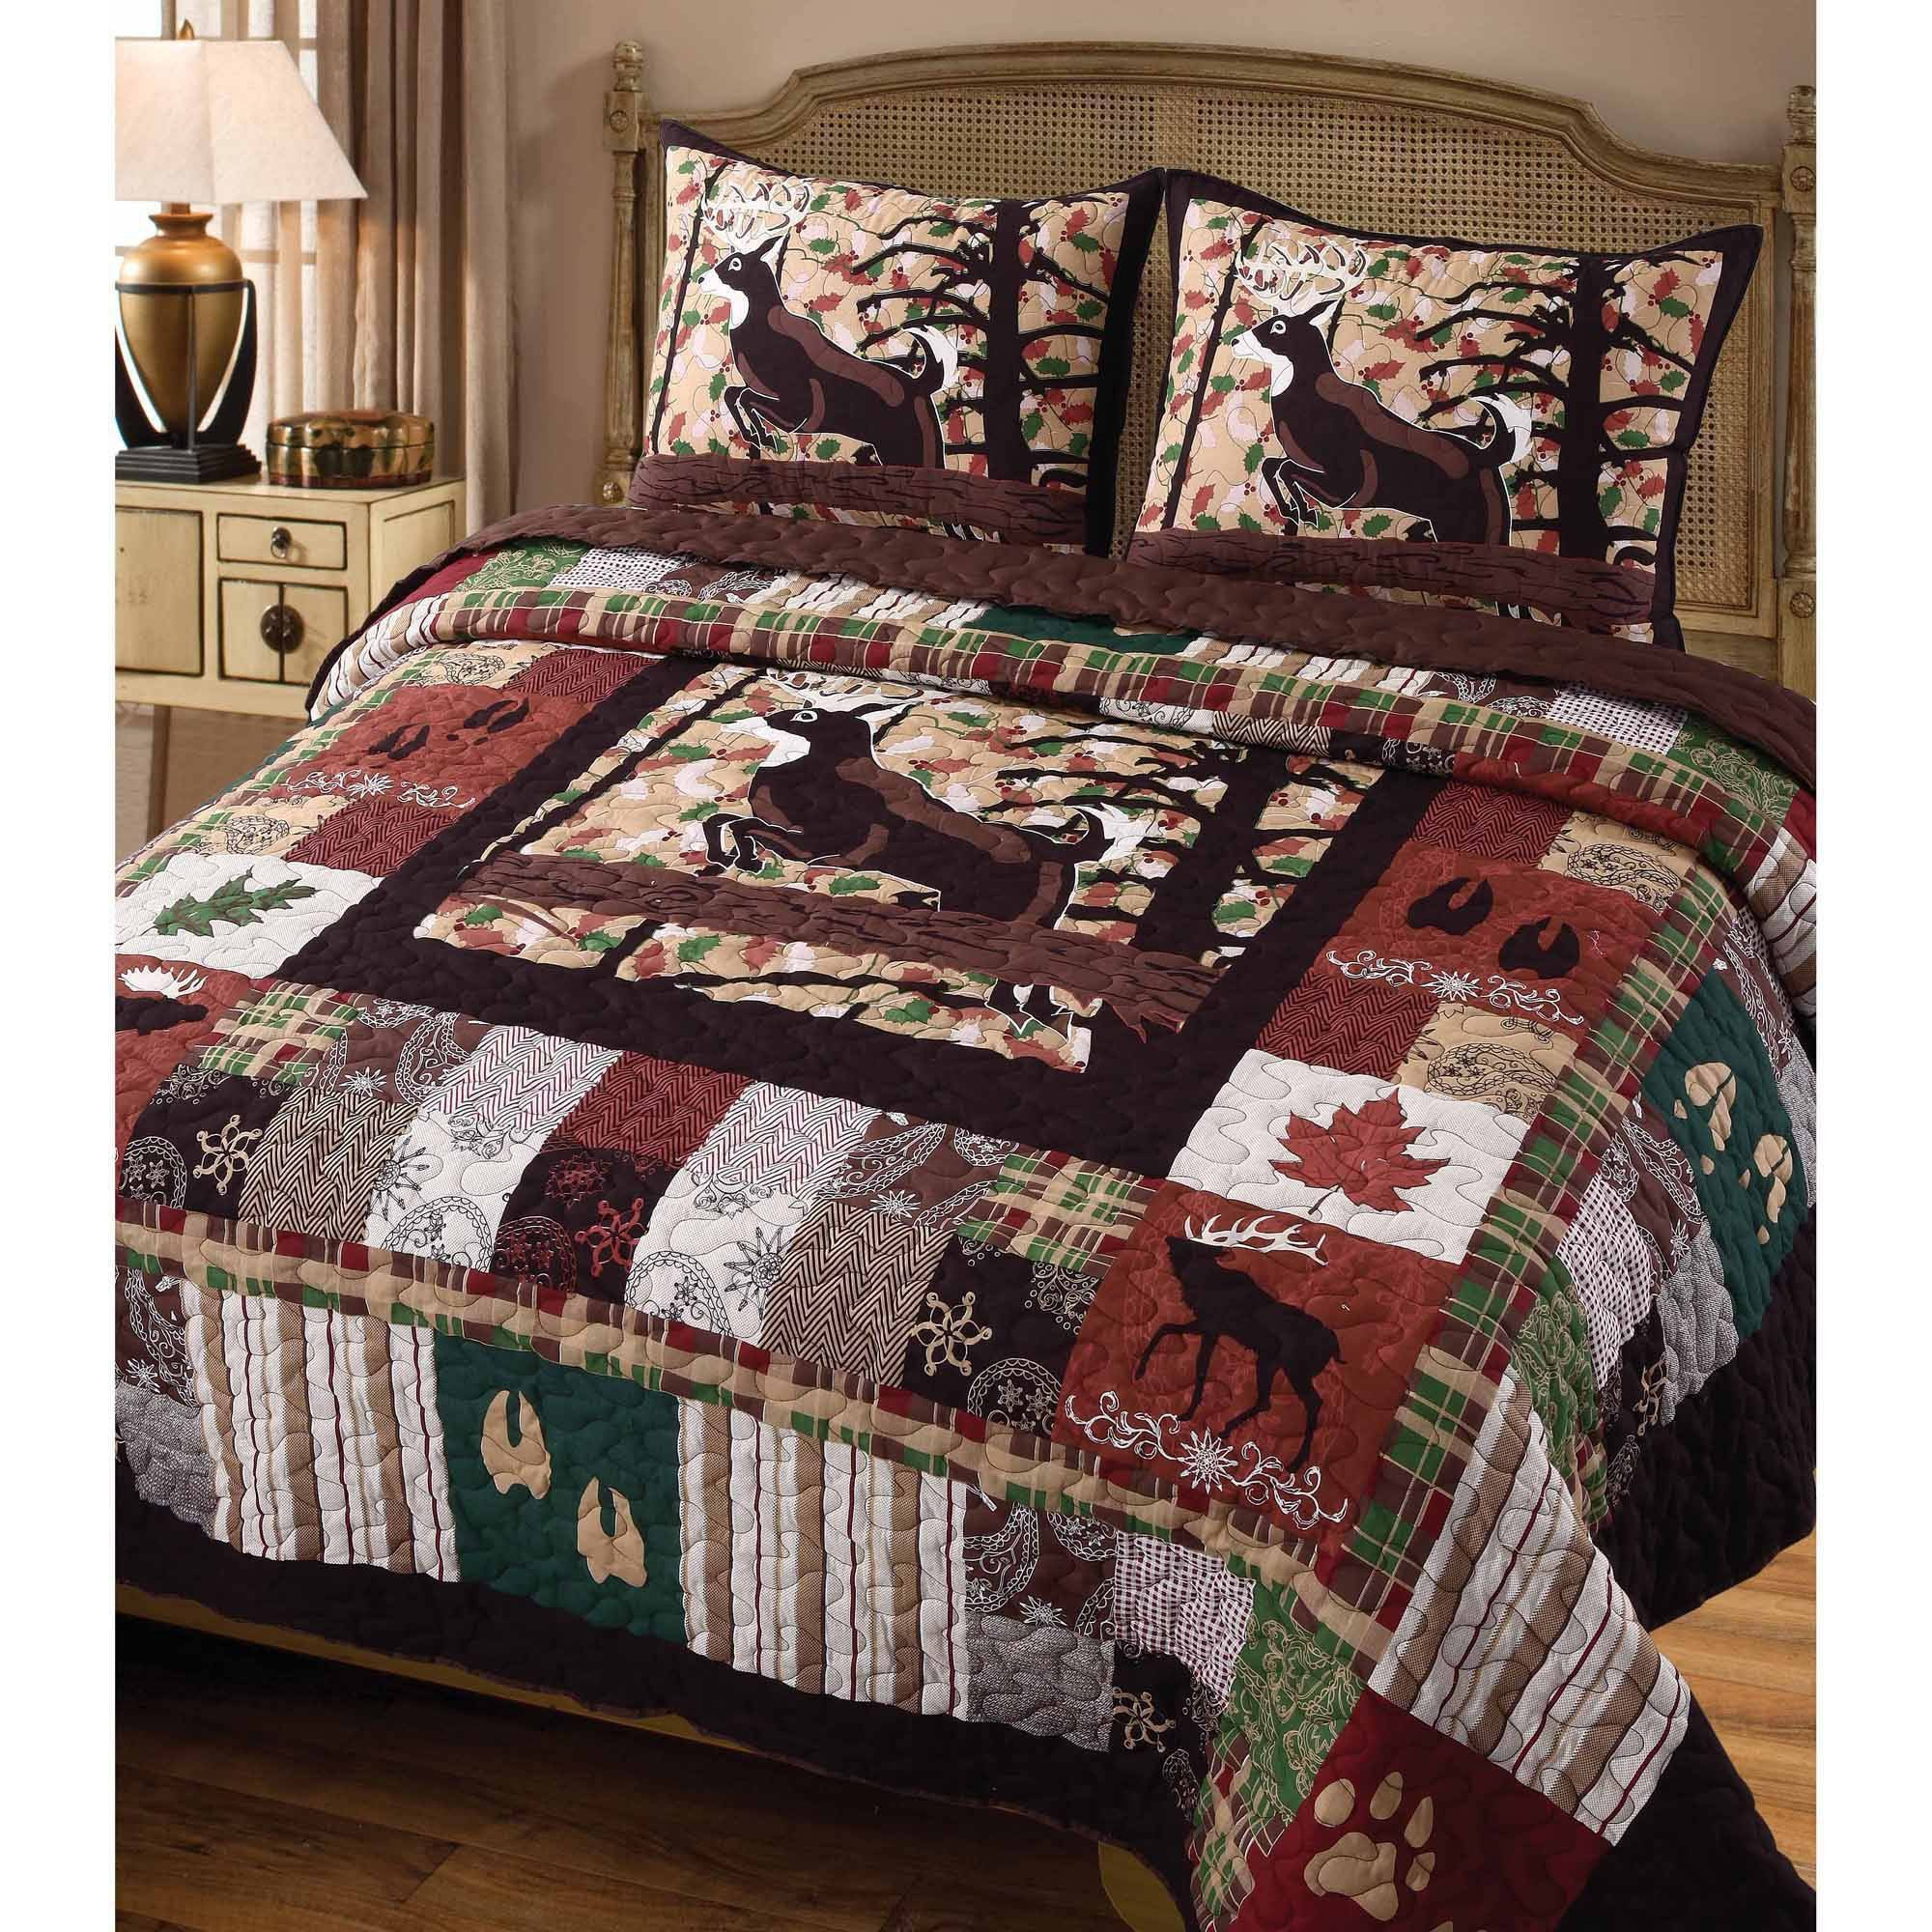 3 Piece Multi Color Wildlife Lodge Themed Quilt Set King, Attractive Stags Footprints Century Leaf Natural Elements Log Cabin Elk Buck Moose Quilted Luxurious Kids Bedding Teen Bedroom, Cotton